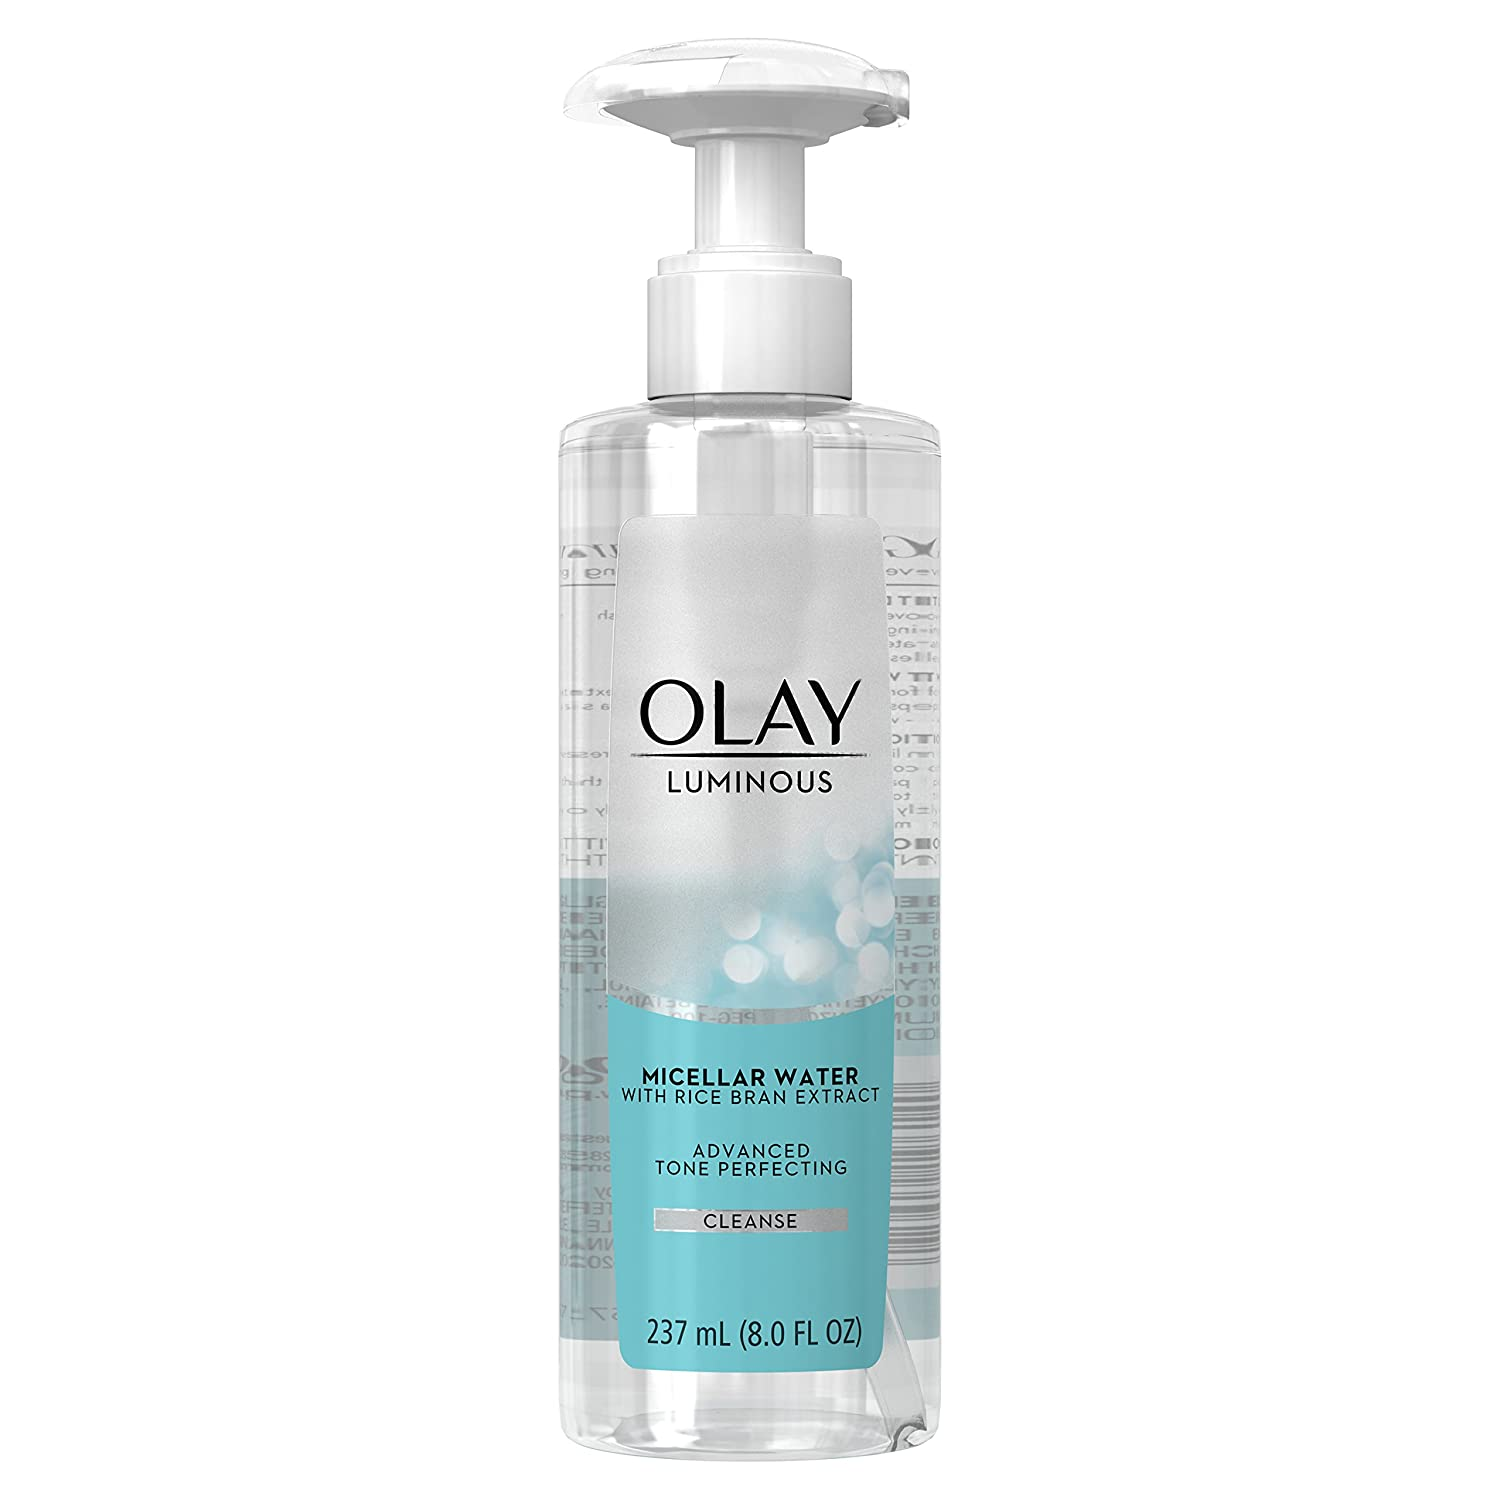 Olay Luminous Advanced Tone Perfecting Micellar Water 237 ml Procter and Gamble